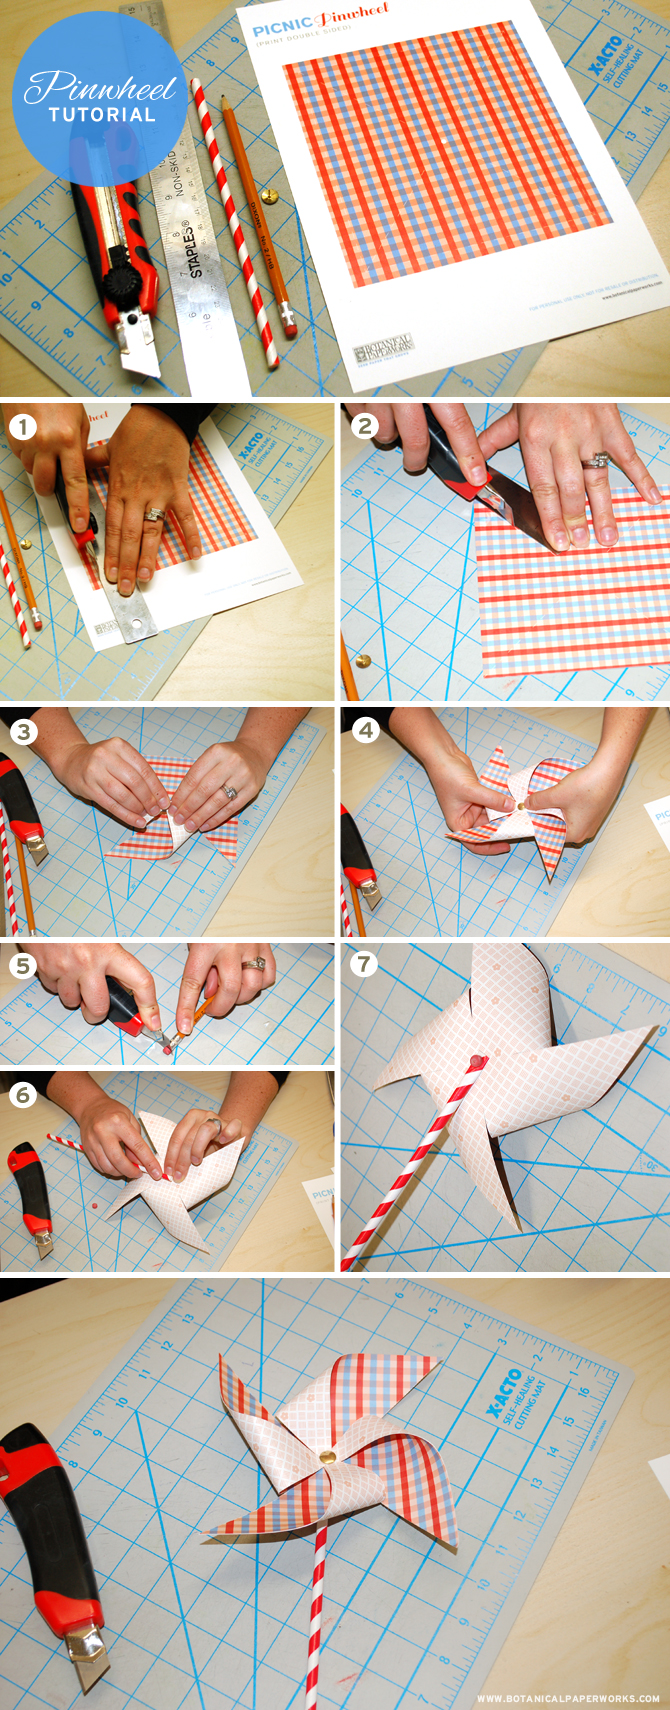 Here's a great Picnic Pinwheel Free Printable and step by step tutorial so you too can easily make these adorable pinwheels.